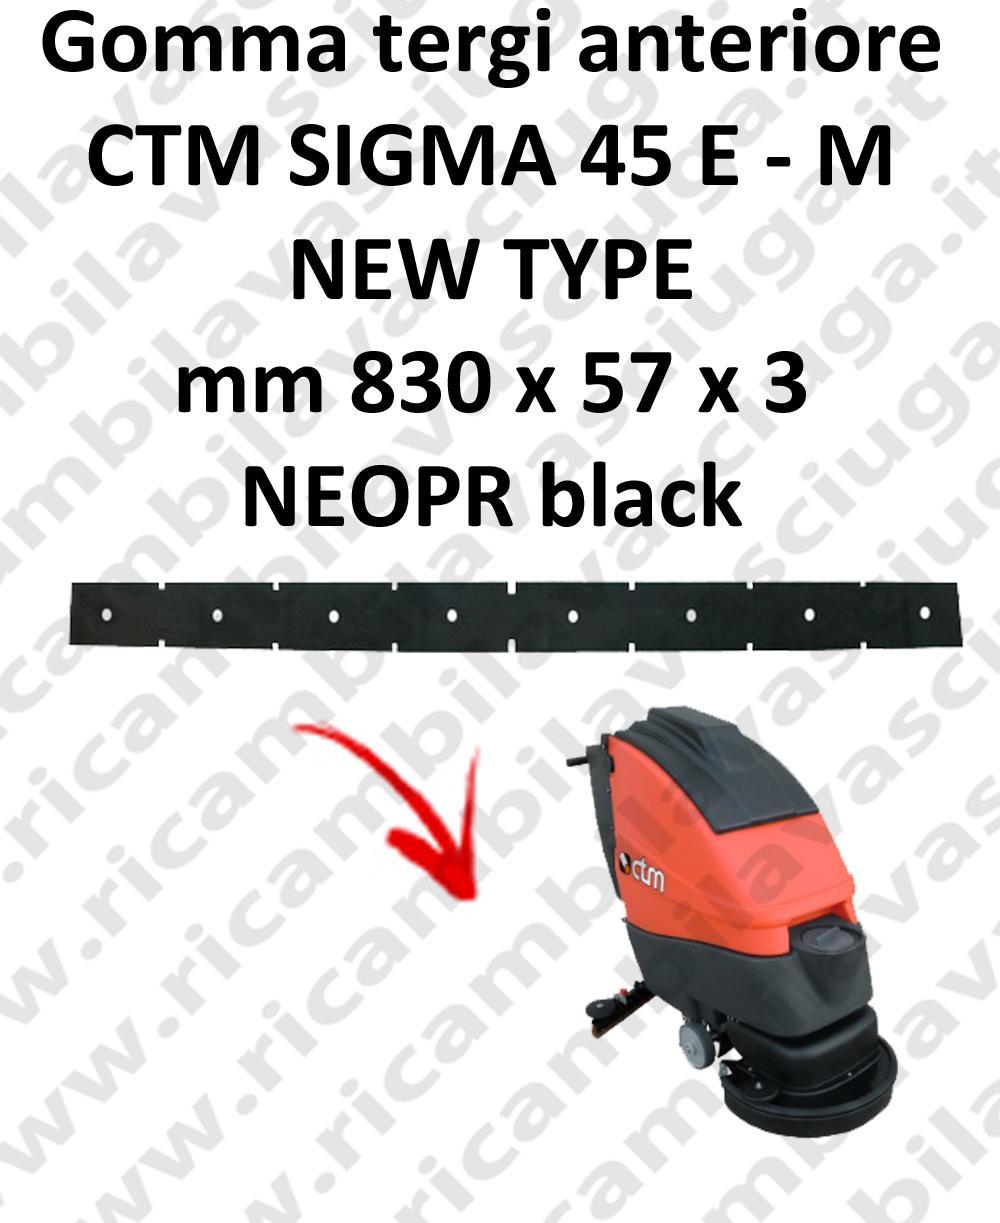 SIGMA 45 E - M new type squeegee rubber scrubber dryer front for CTM